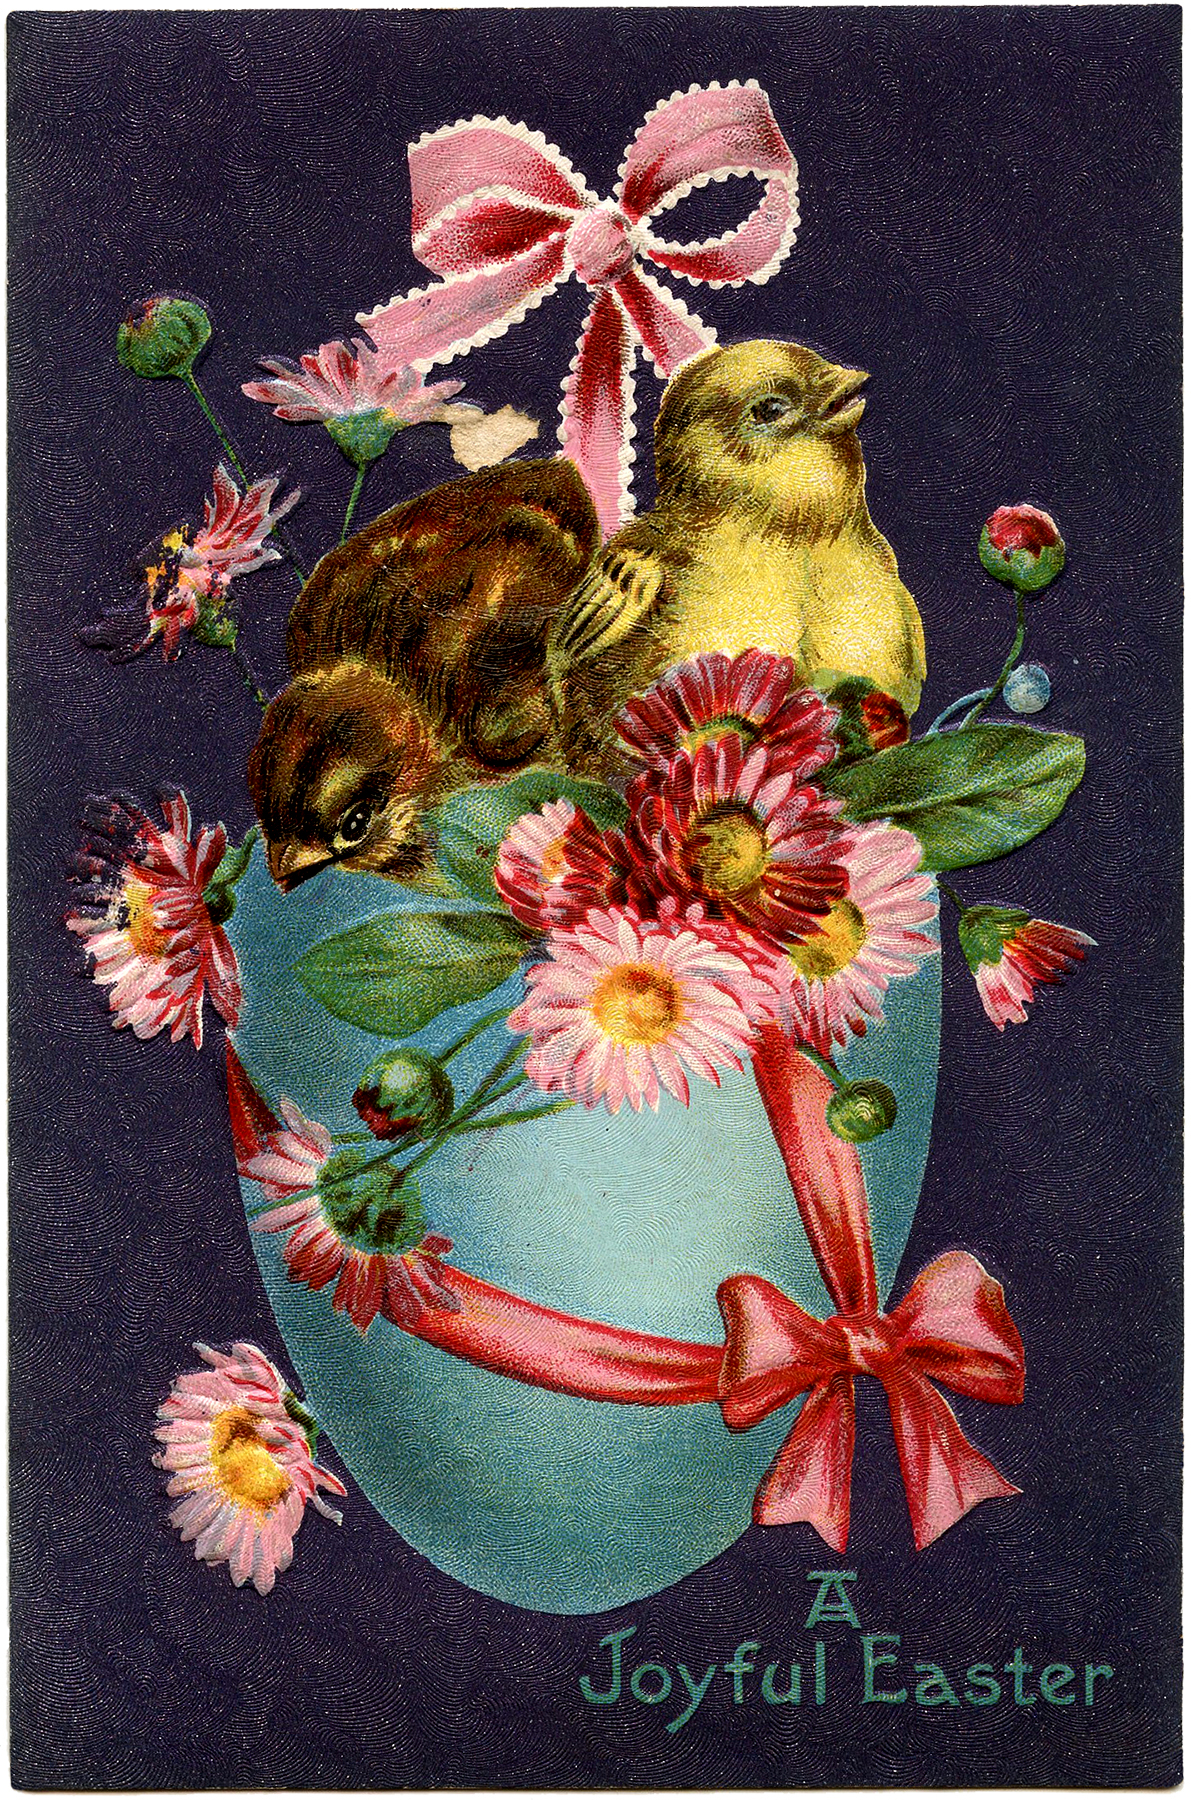 Vintage Easter Stock Image Super Pretty The Graphics